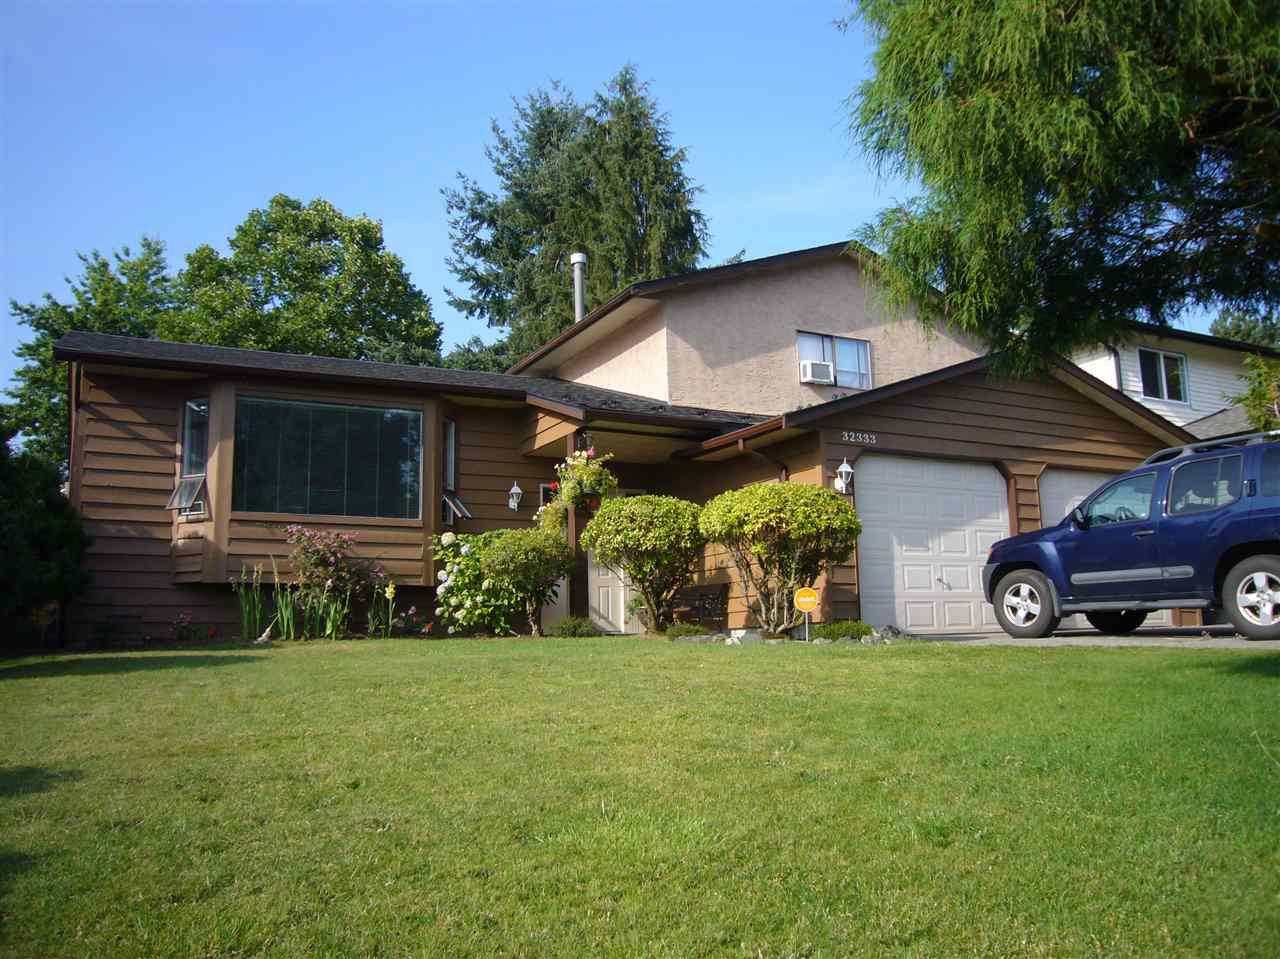 Main Photo: 32333 BEAVER Drive in Mission: Mission BC House for sale : MLS®# R2197503